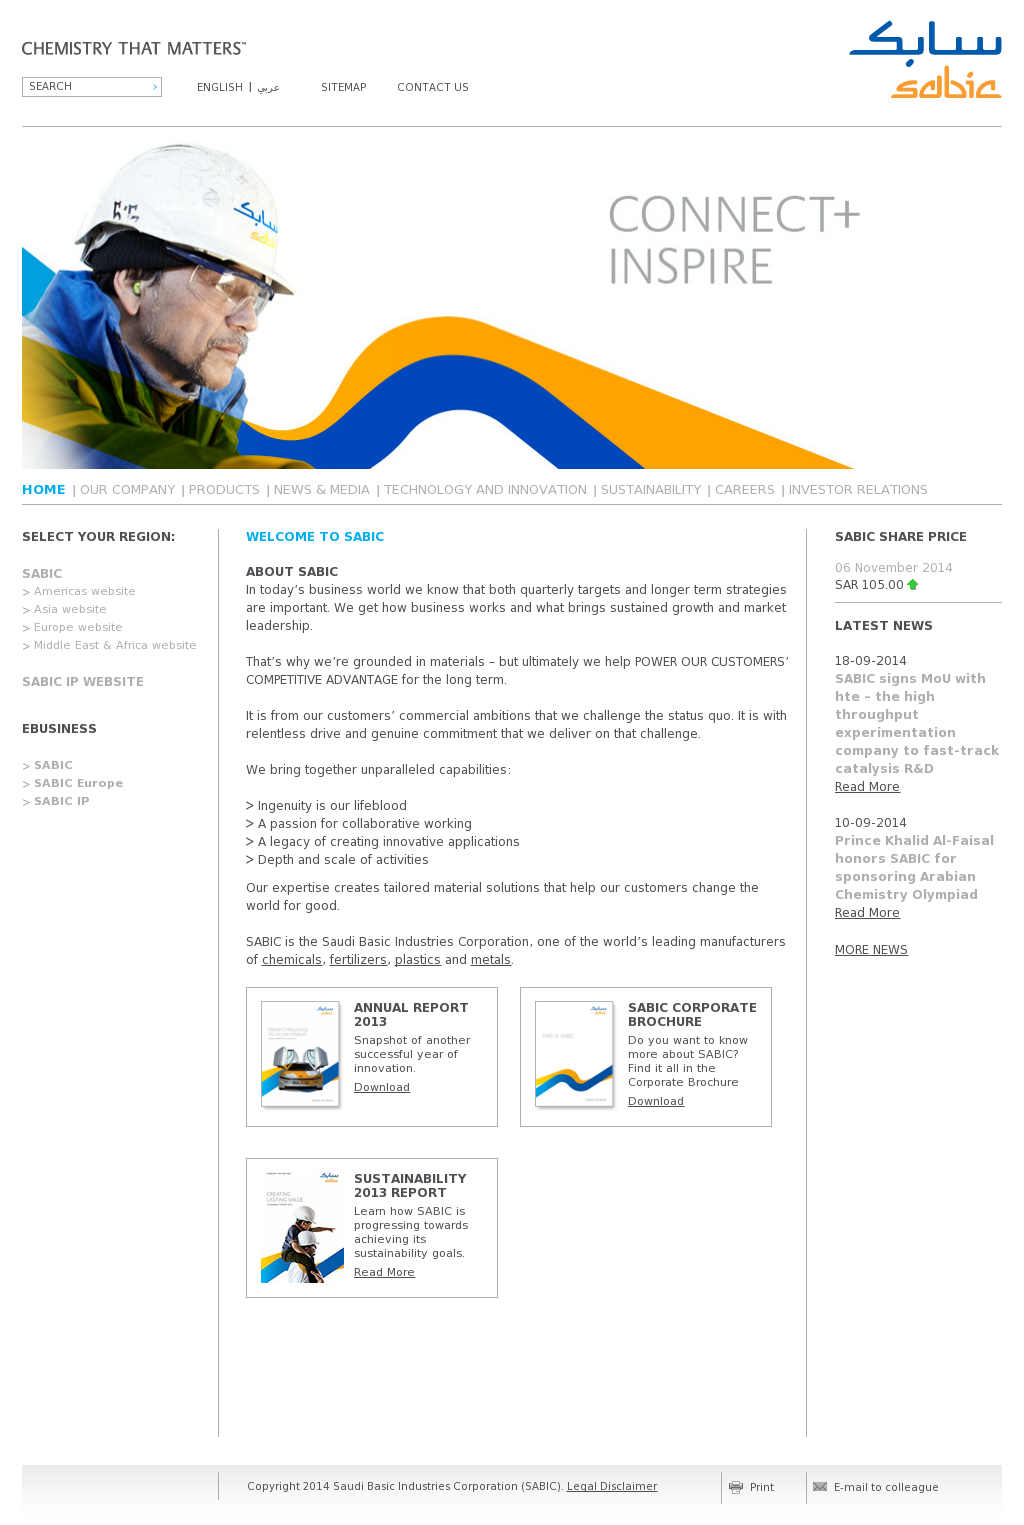 SABIC Competitors, Revenue and Employees - Owler Company Profile